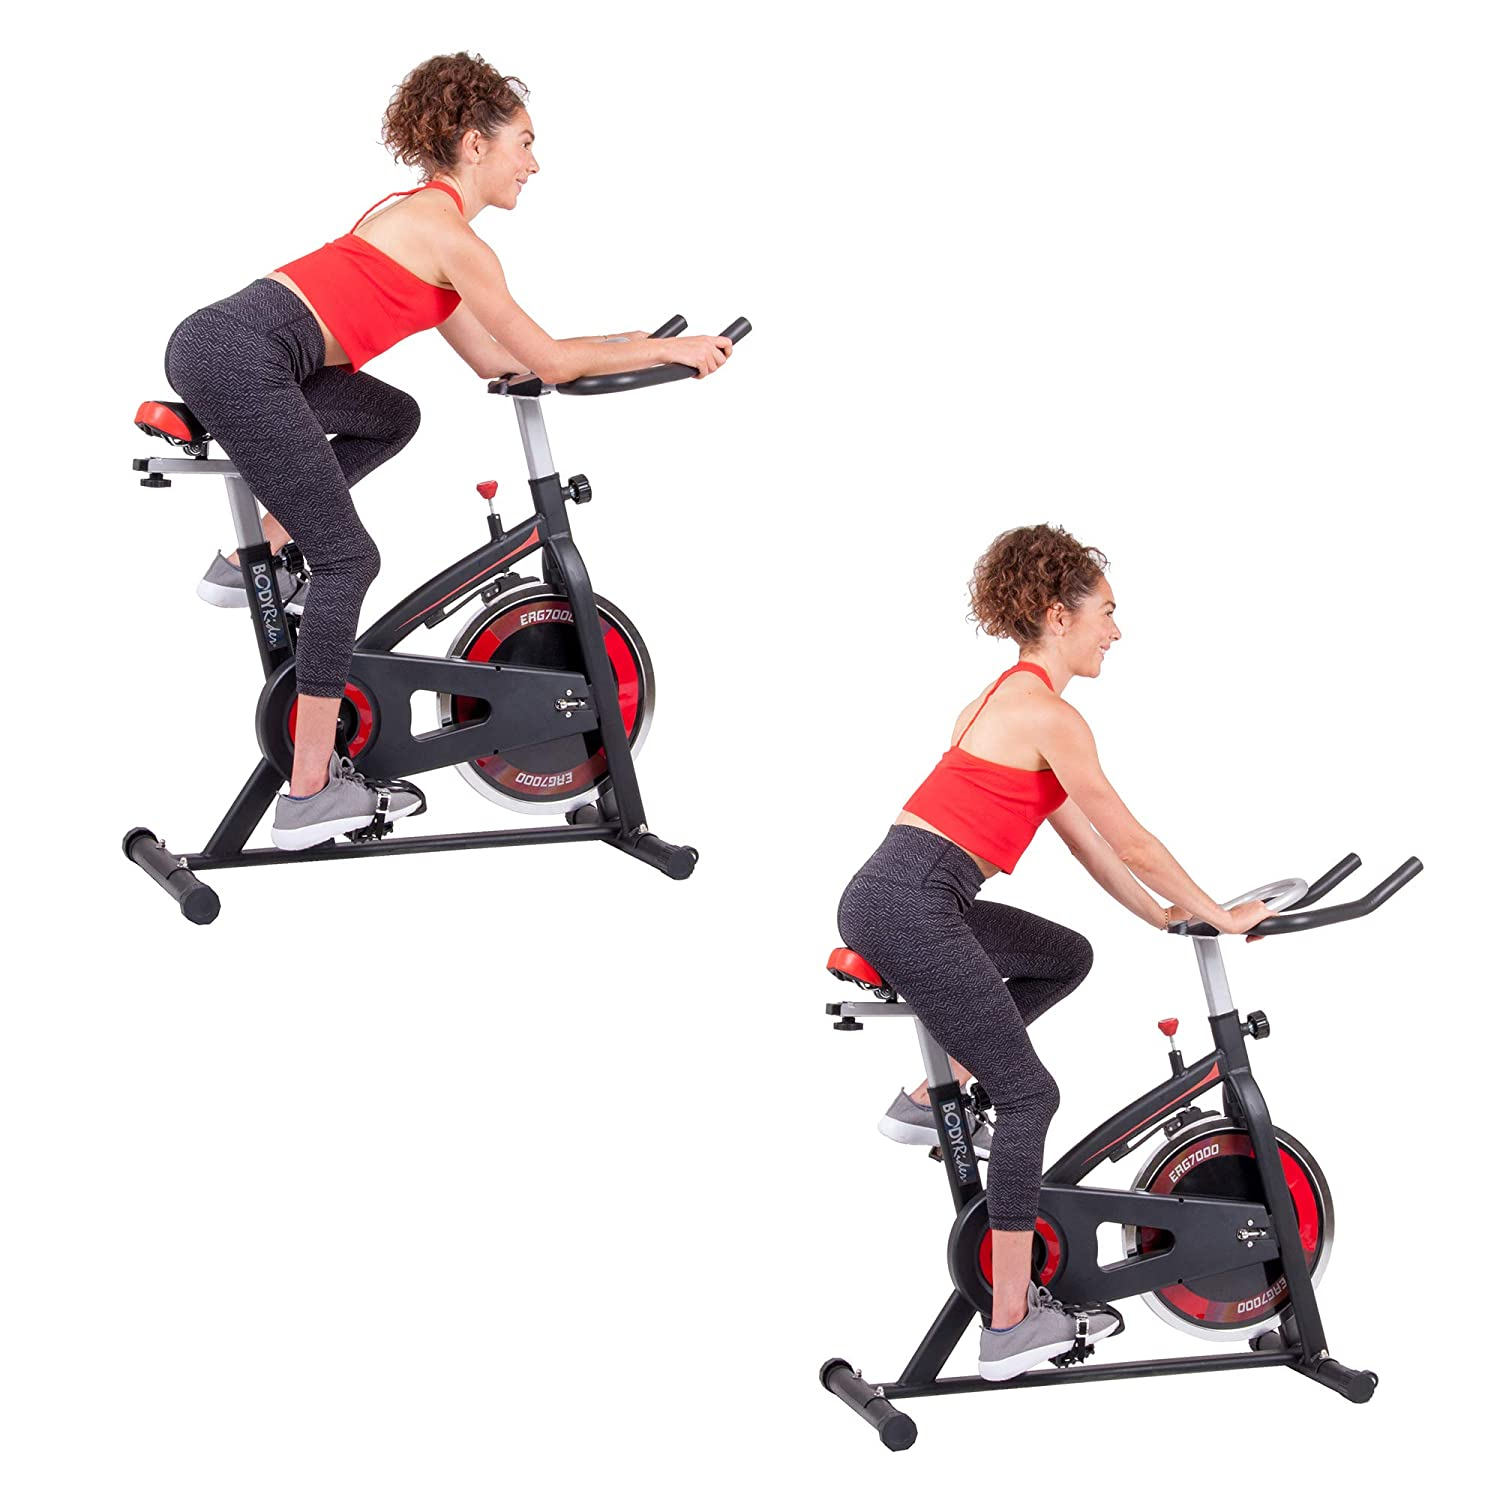 Body Rider JUST LAUNCHED Sale Pro Indoor Training Cycle ERG7000